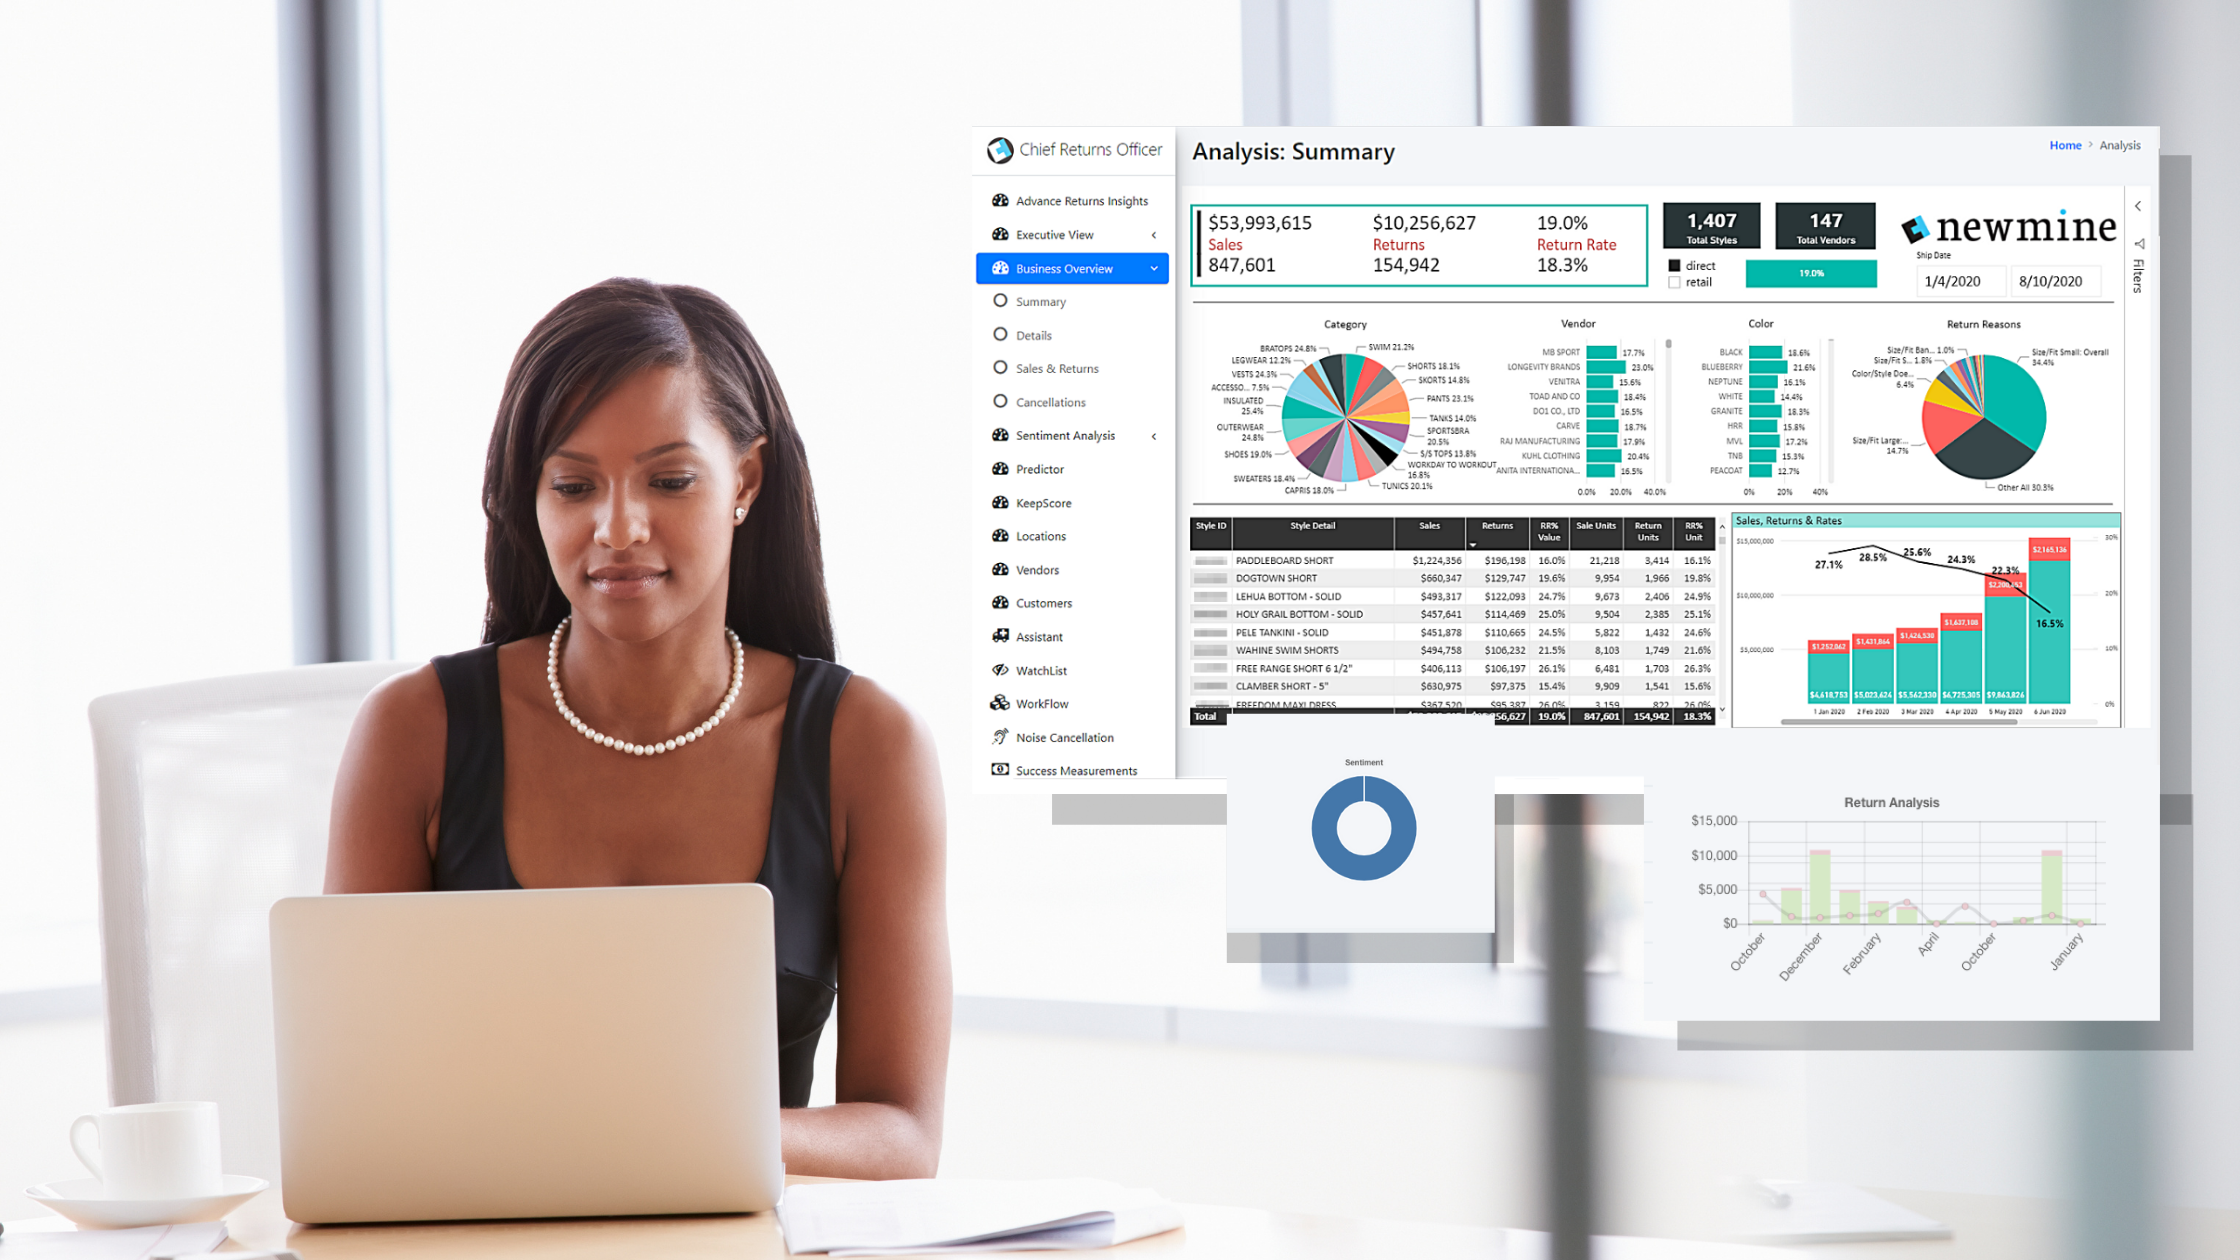 Woman Working on Computer with Chief Returns Officer Dashboards